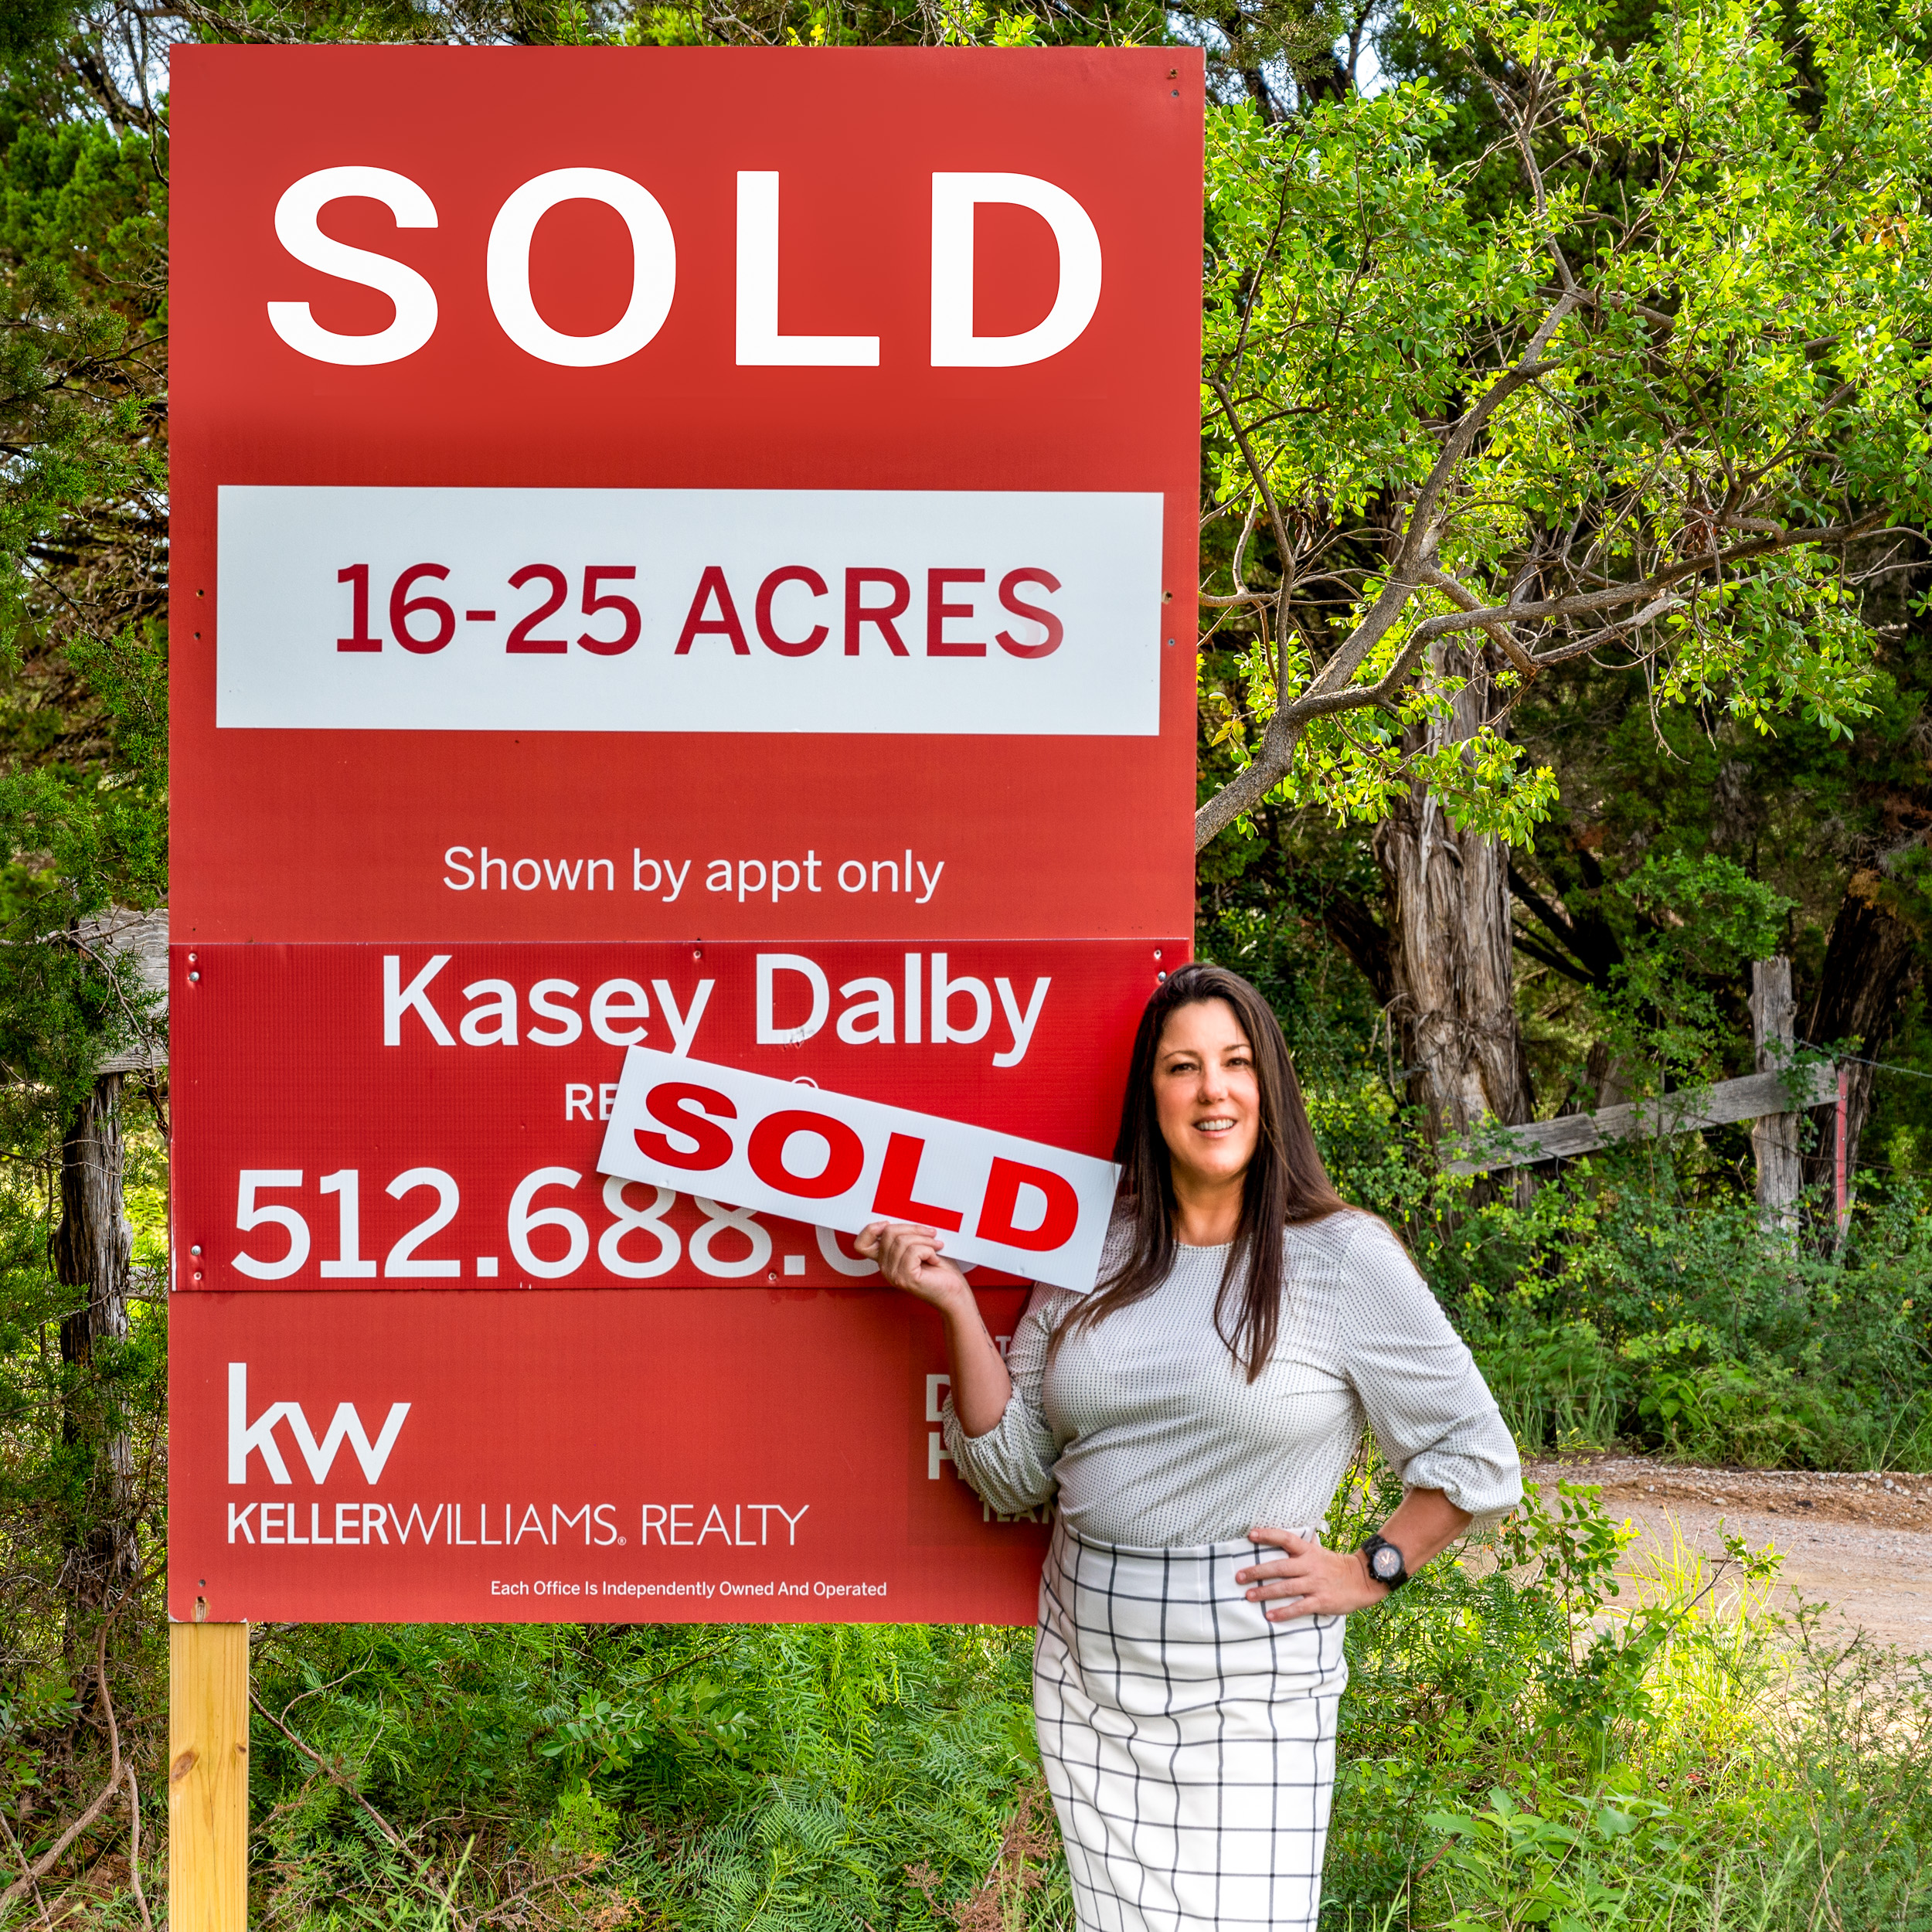 We successfully sold a legacy property that had been owned since the 1950s!